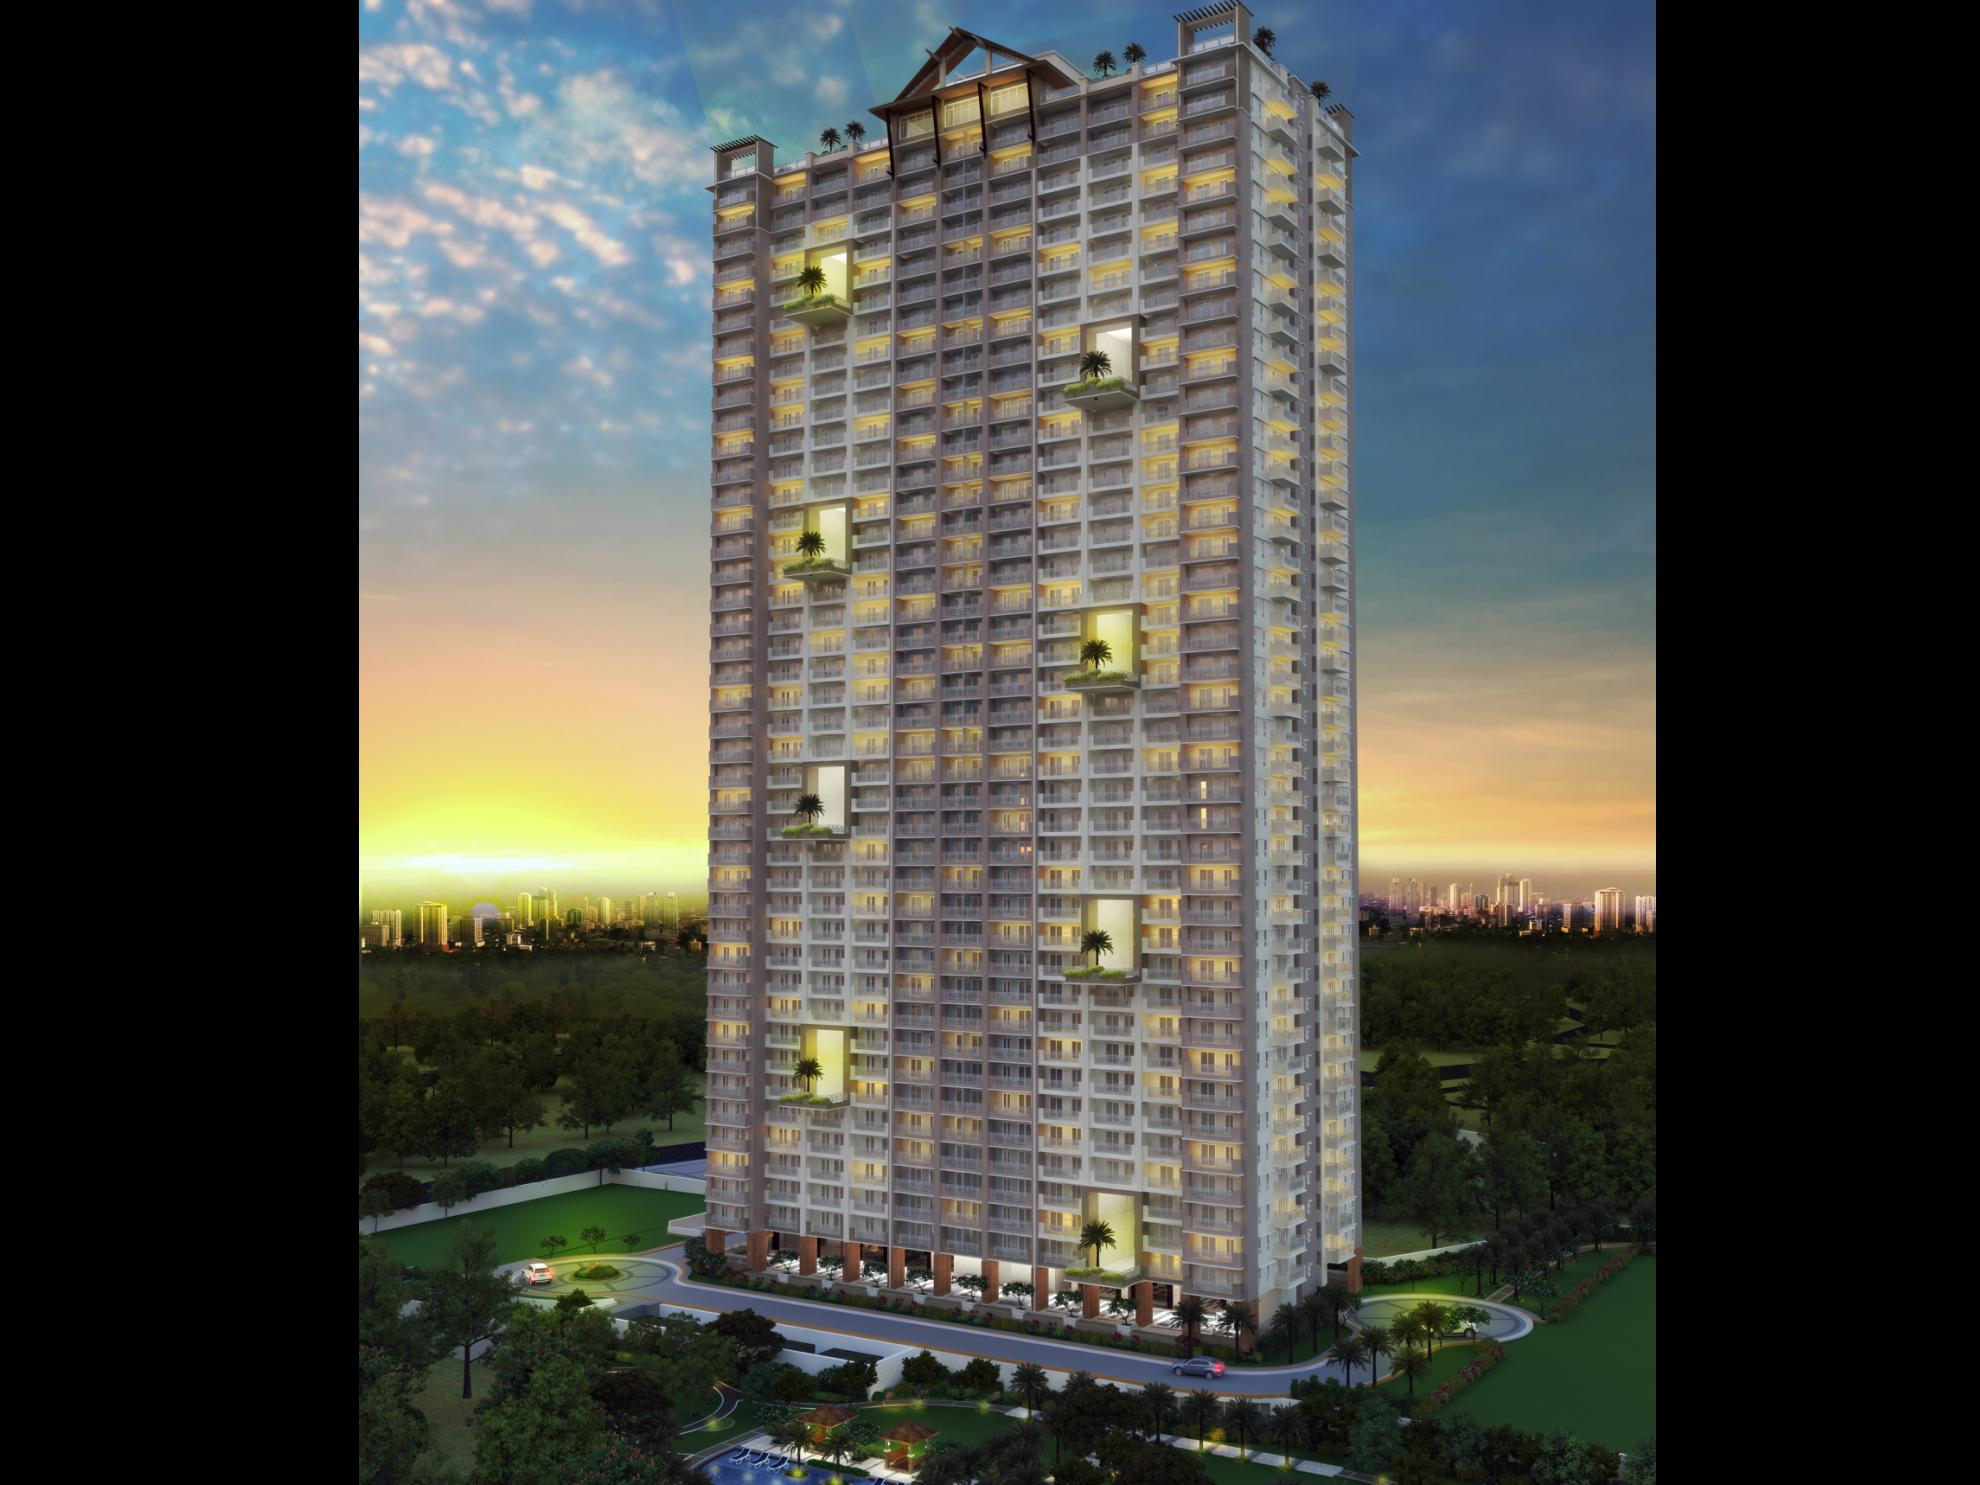 Prisma residences enjoys brisk sales after January launch